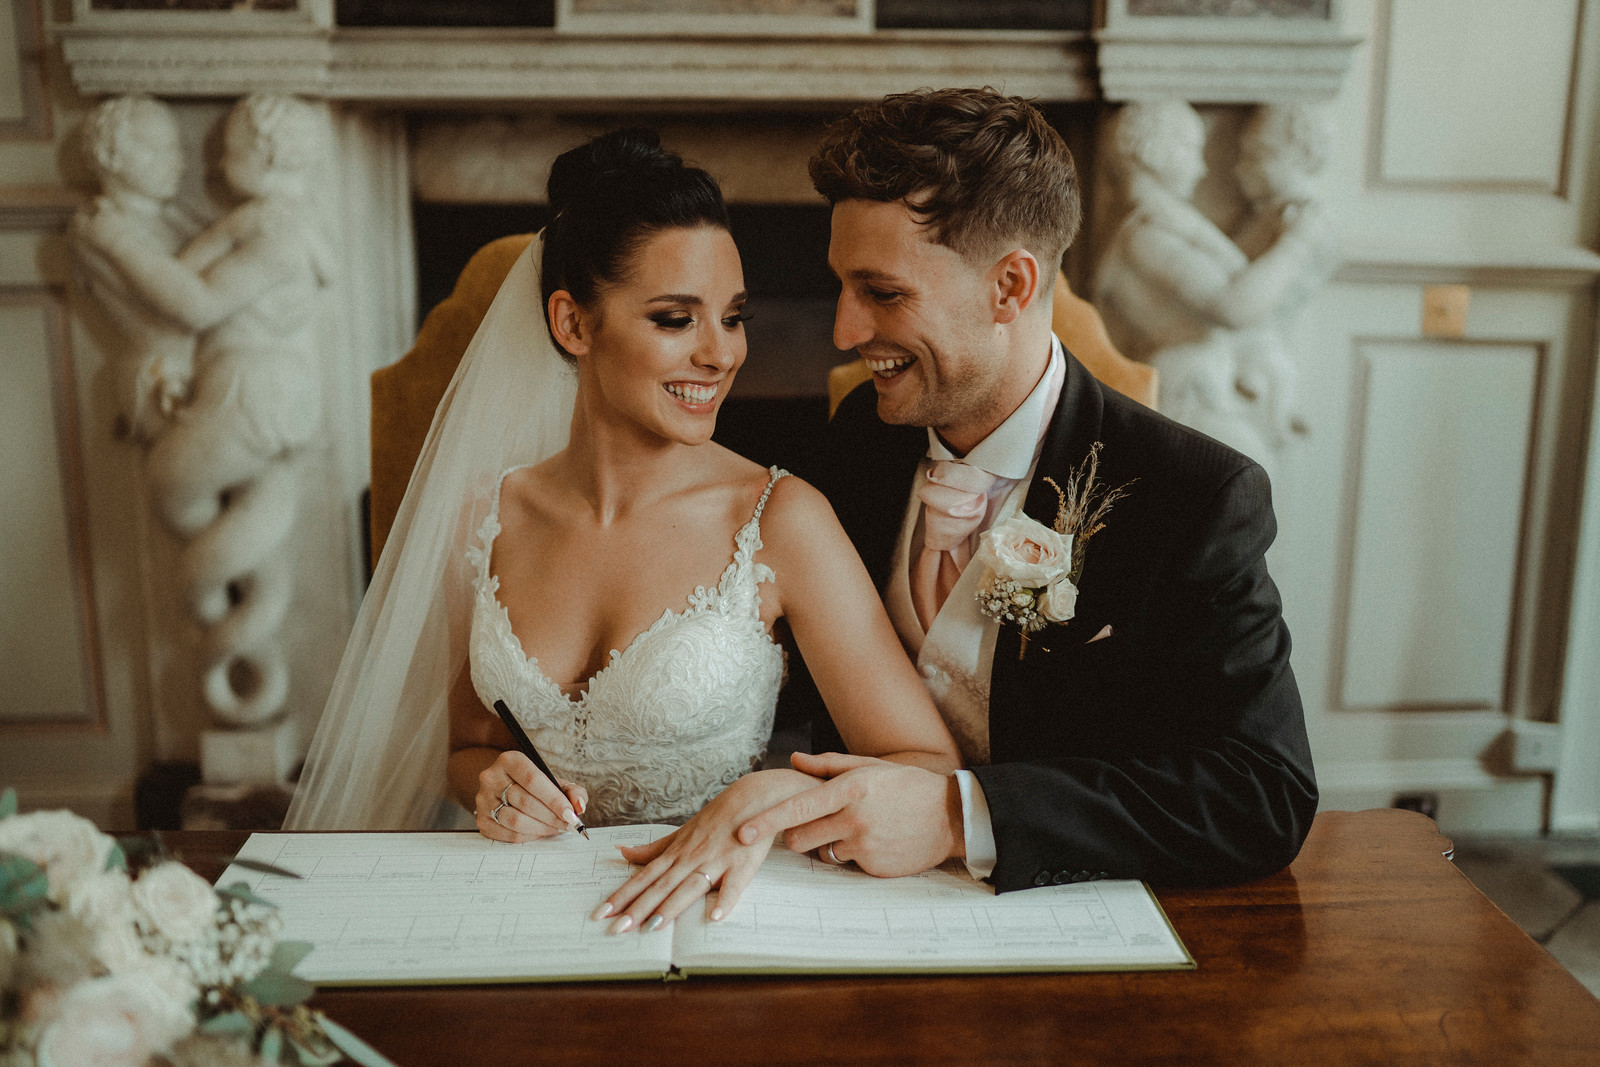 Bride and groom smile at each other as they sign the book